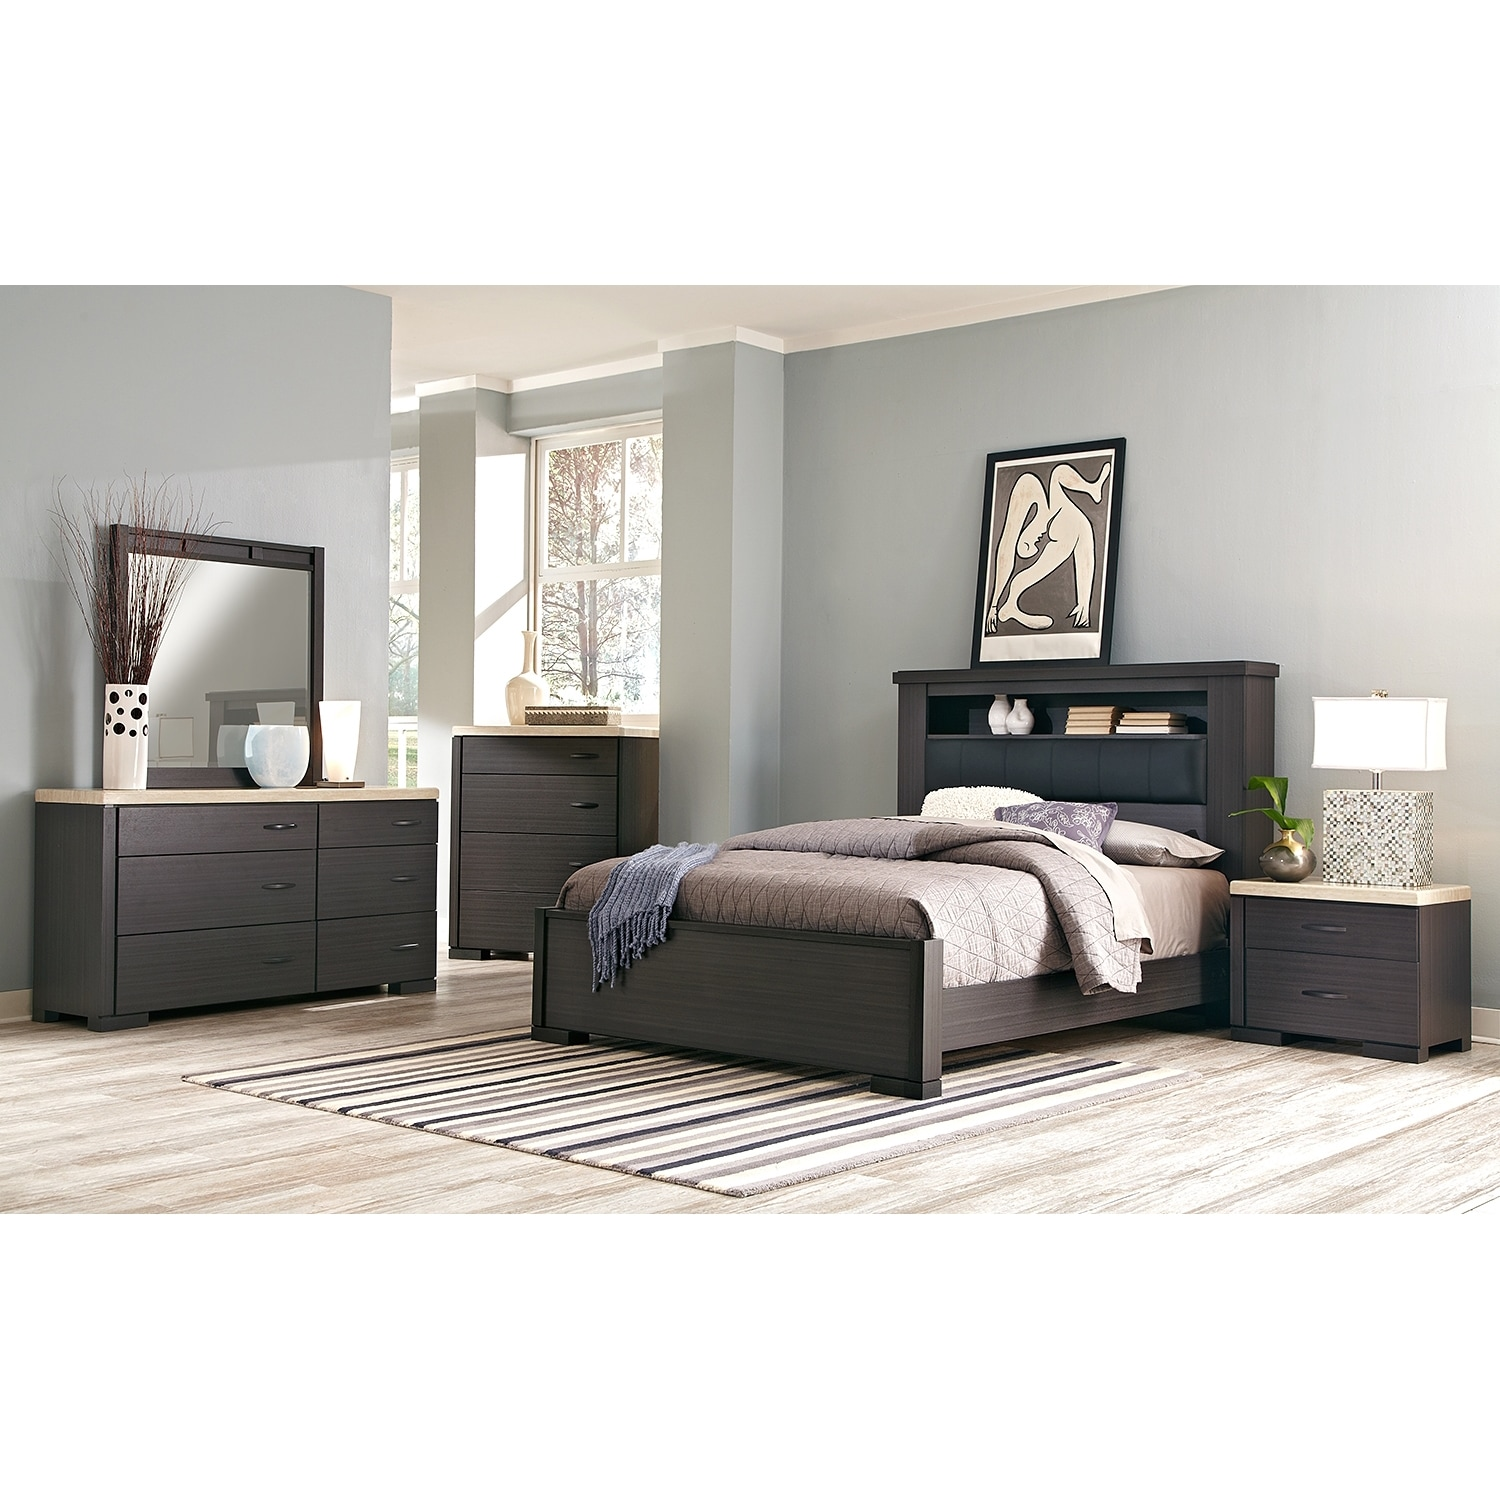 Camino 7-Piece King Bedroom Set - Charcoal and Ivory | Value City ...